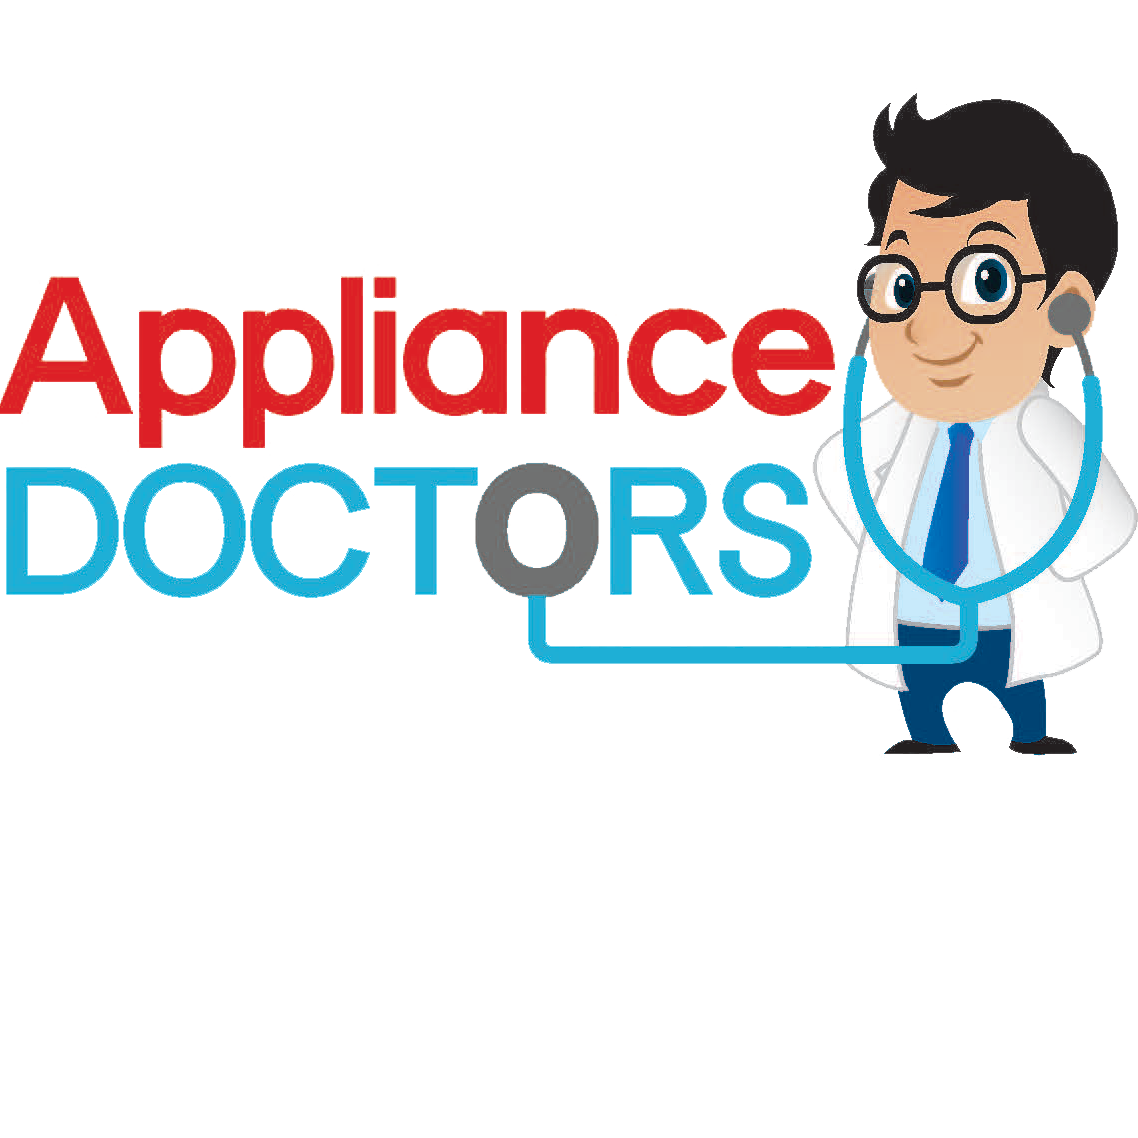 The Appliance Doctors Sales and Repair